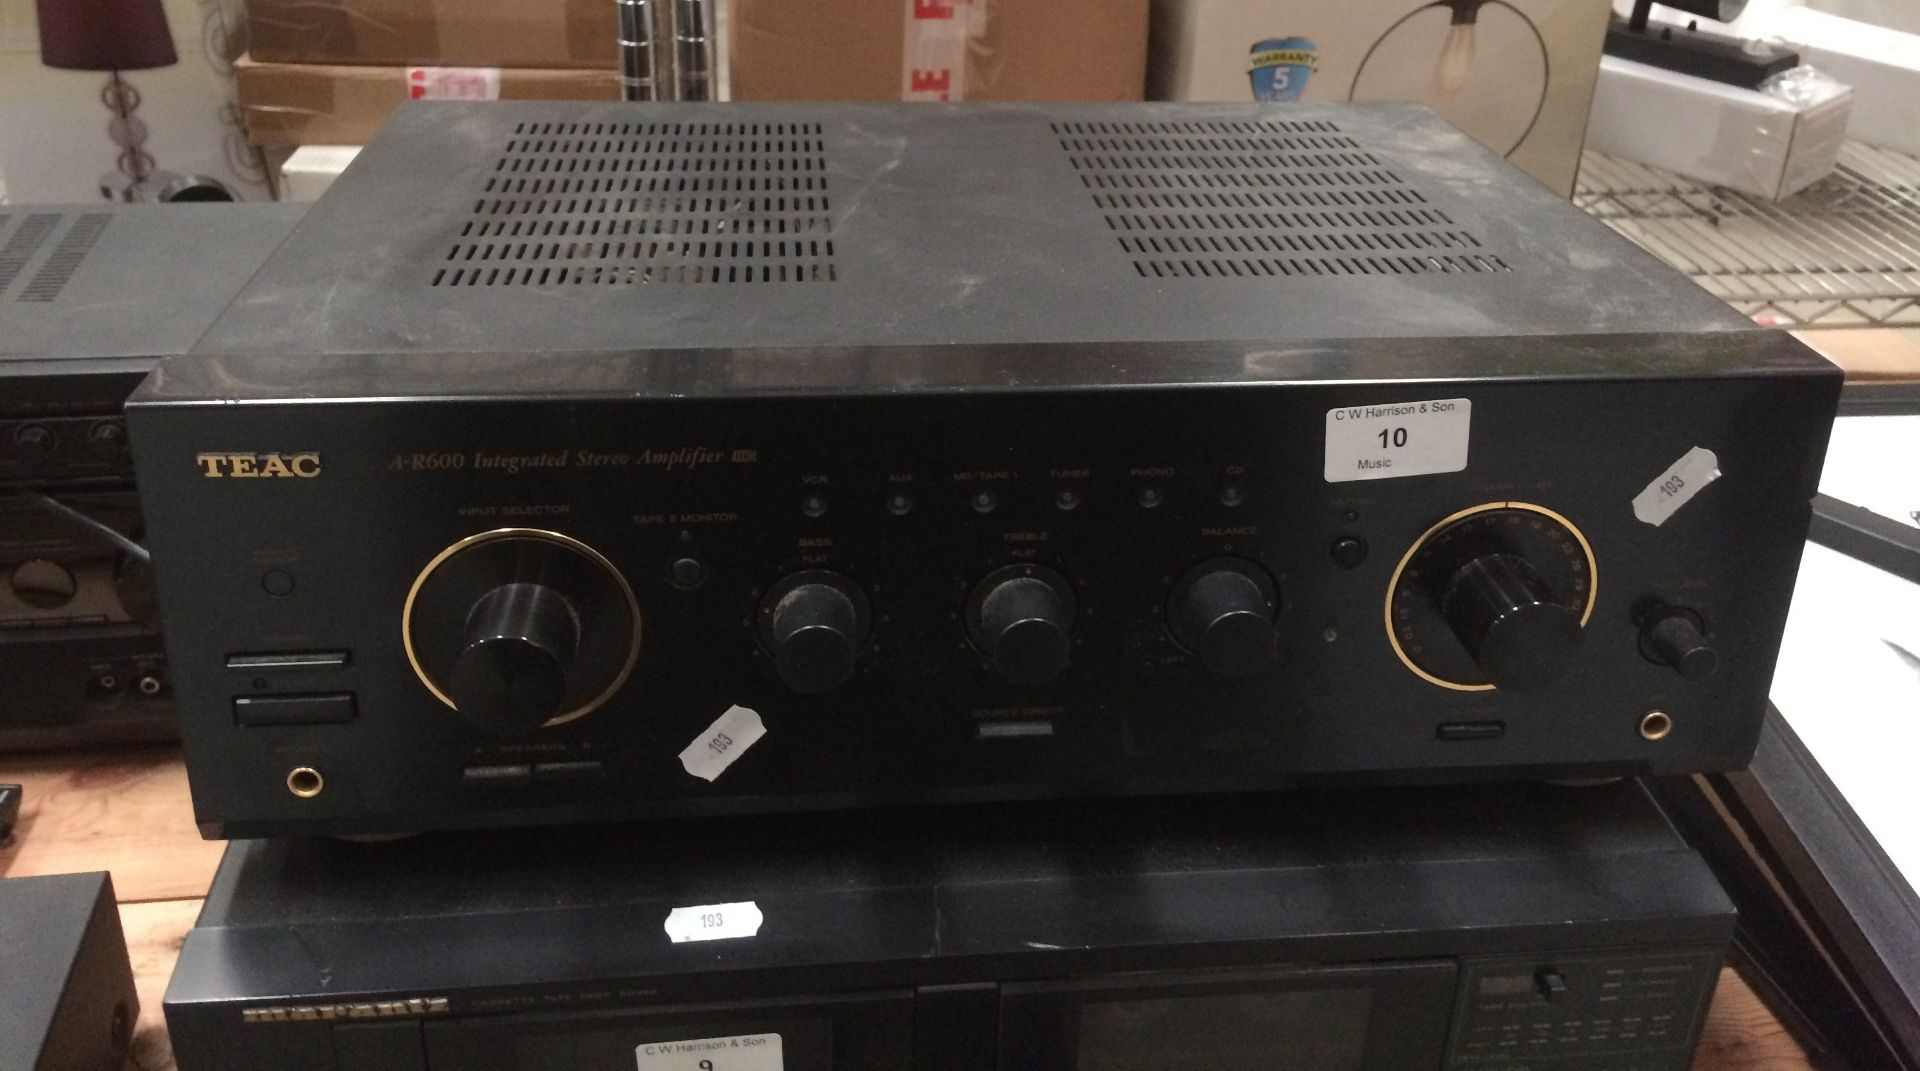 Lot 10 - Teac A-R600 integrated stereo amplifier